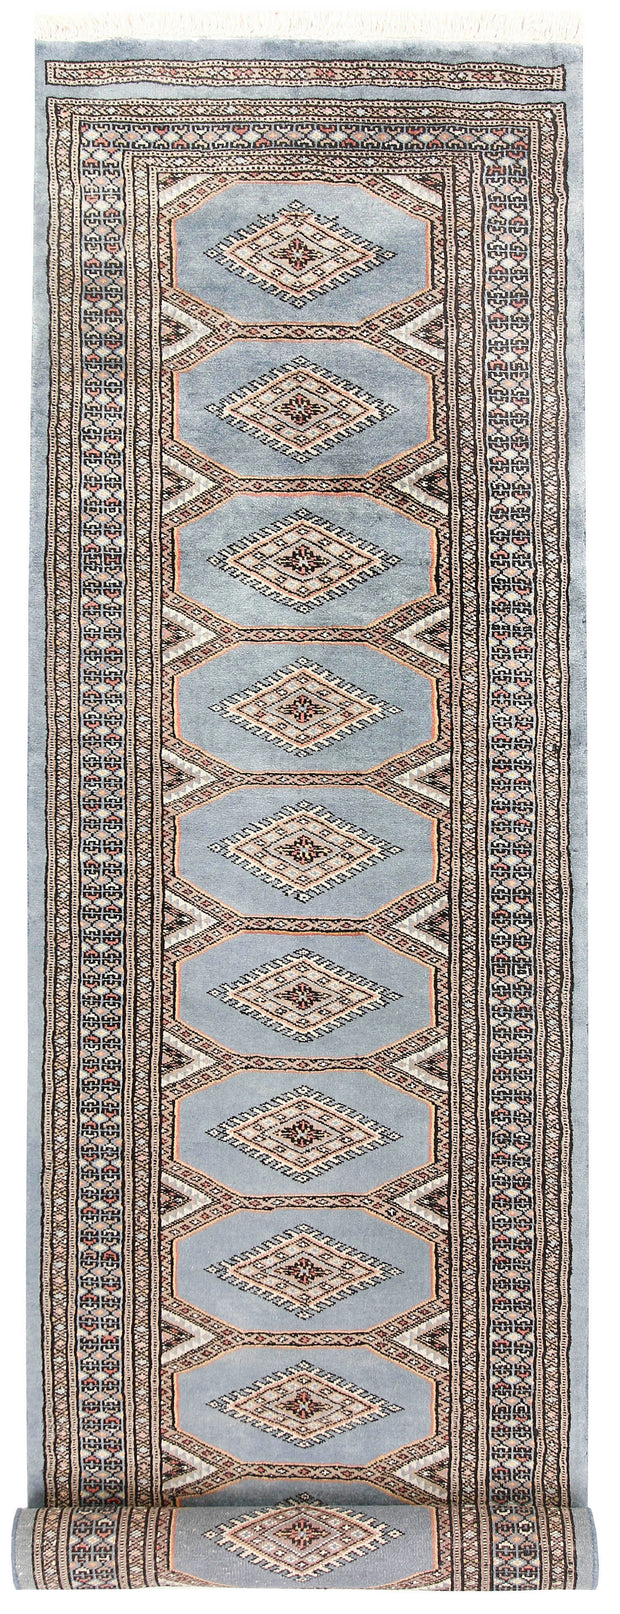 Light Steel Blue Jaldar 2' 4 x 8' 10 - No. 58959 - ALRUG Rug Store